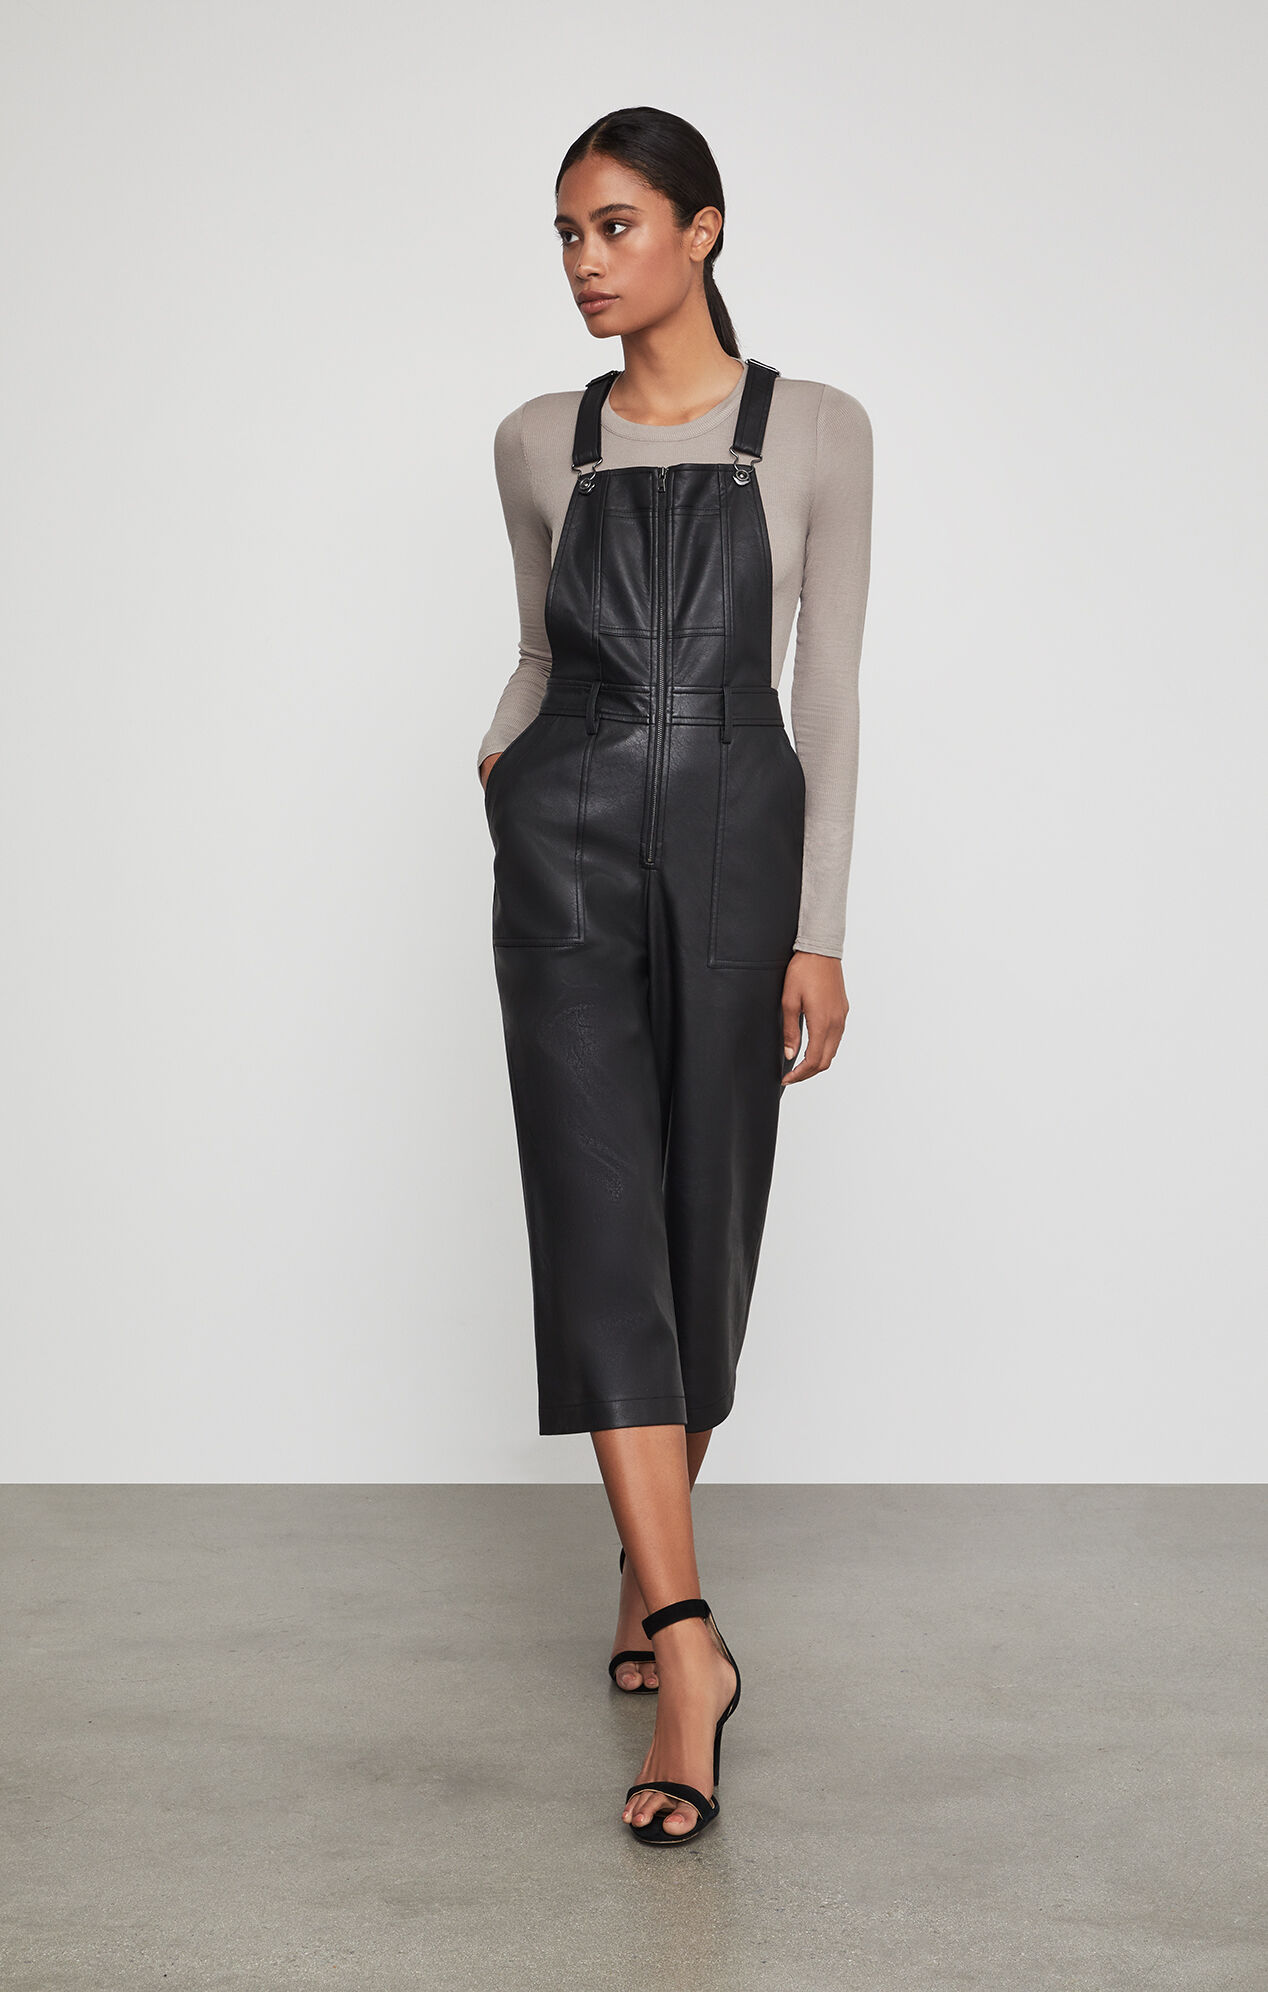 Overalls Are Making A Comeback As The Latest Fashion Trend: Jamee Faux-Leather Overalls